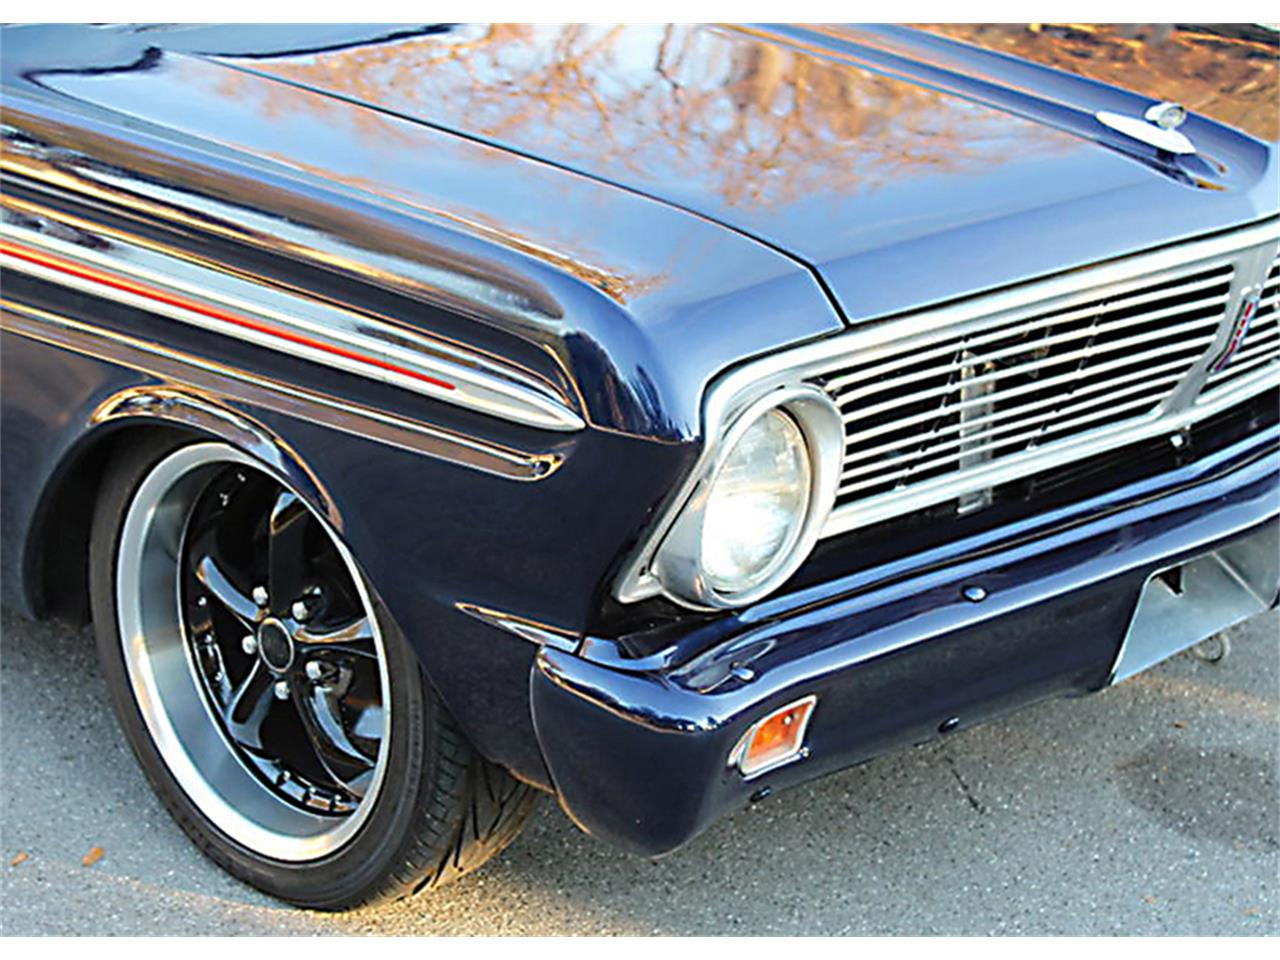 Large Picture of 1965 Falcon located in Florida - $29,500.00 Offered by MJC Classic Cars - PH47